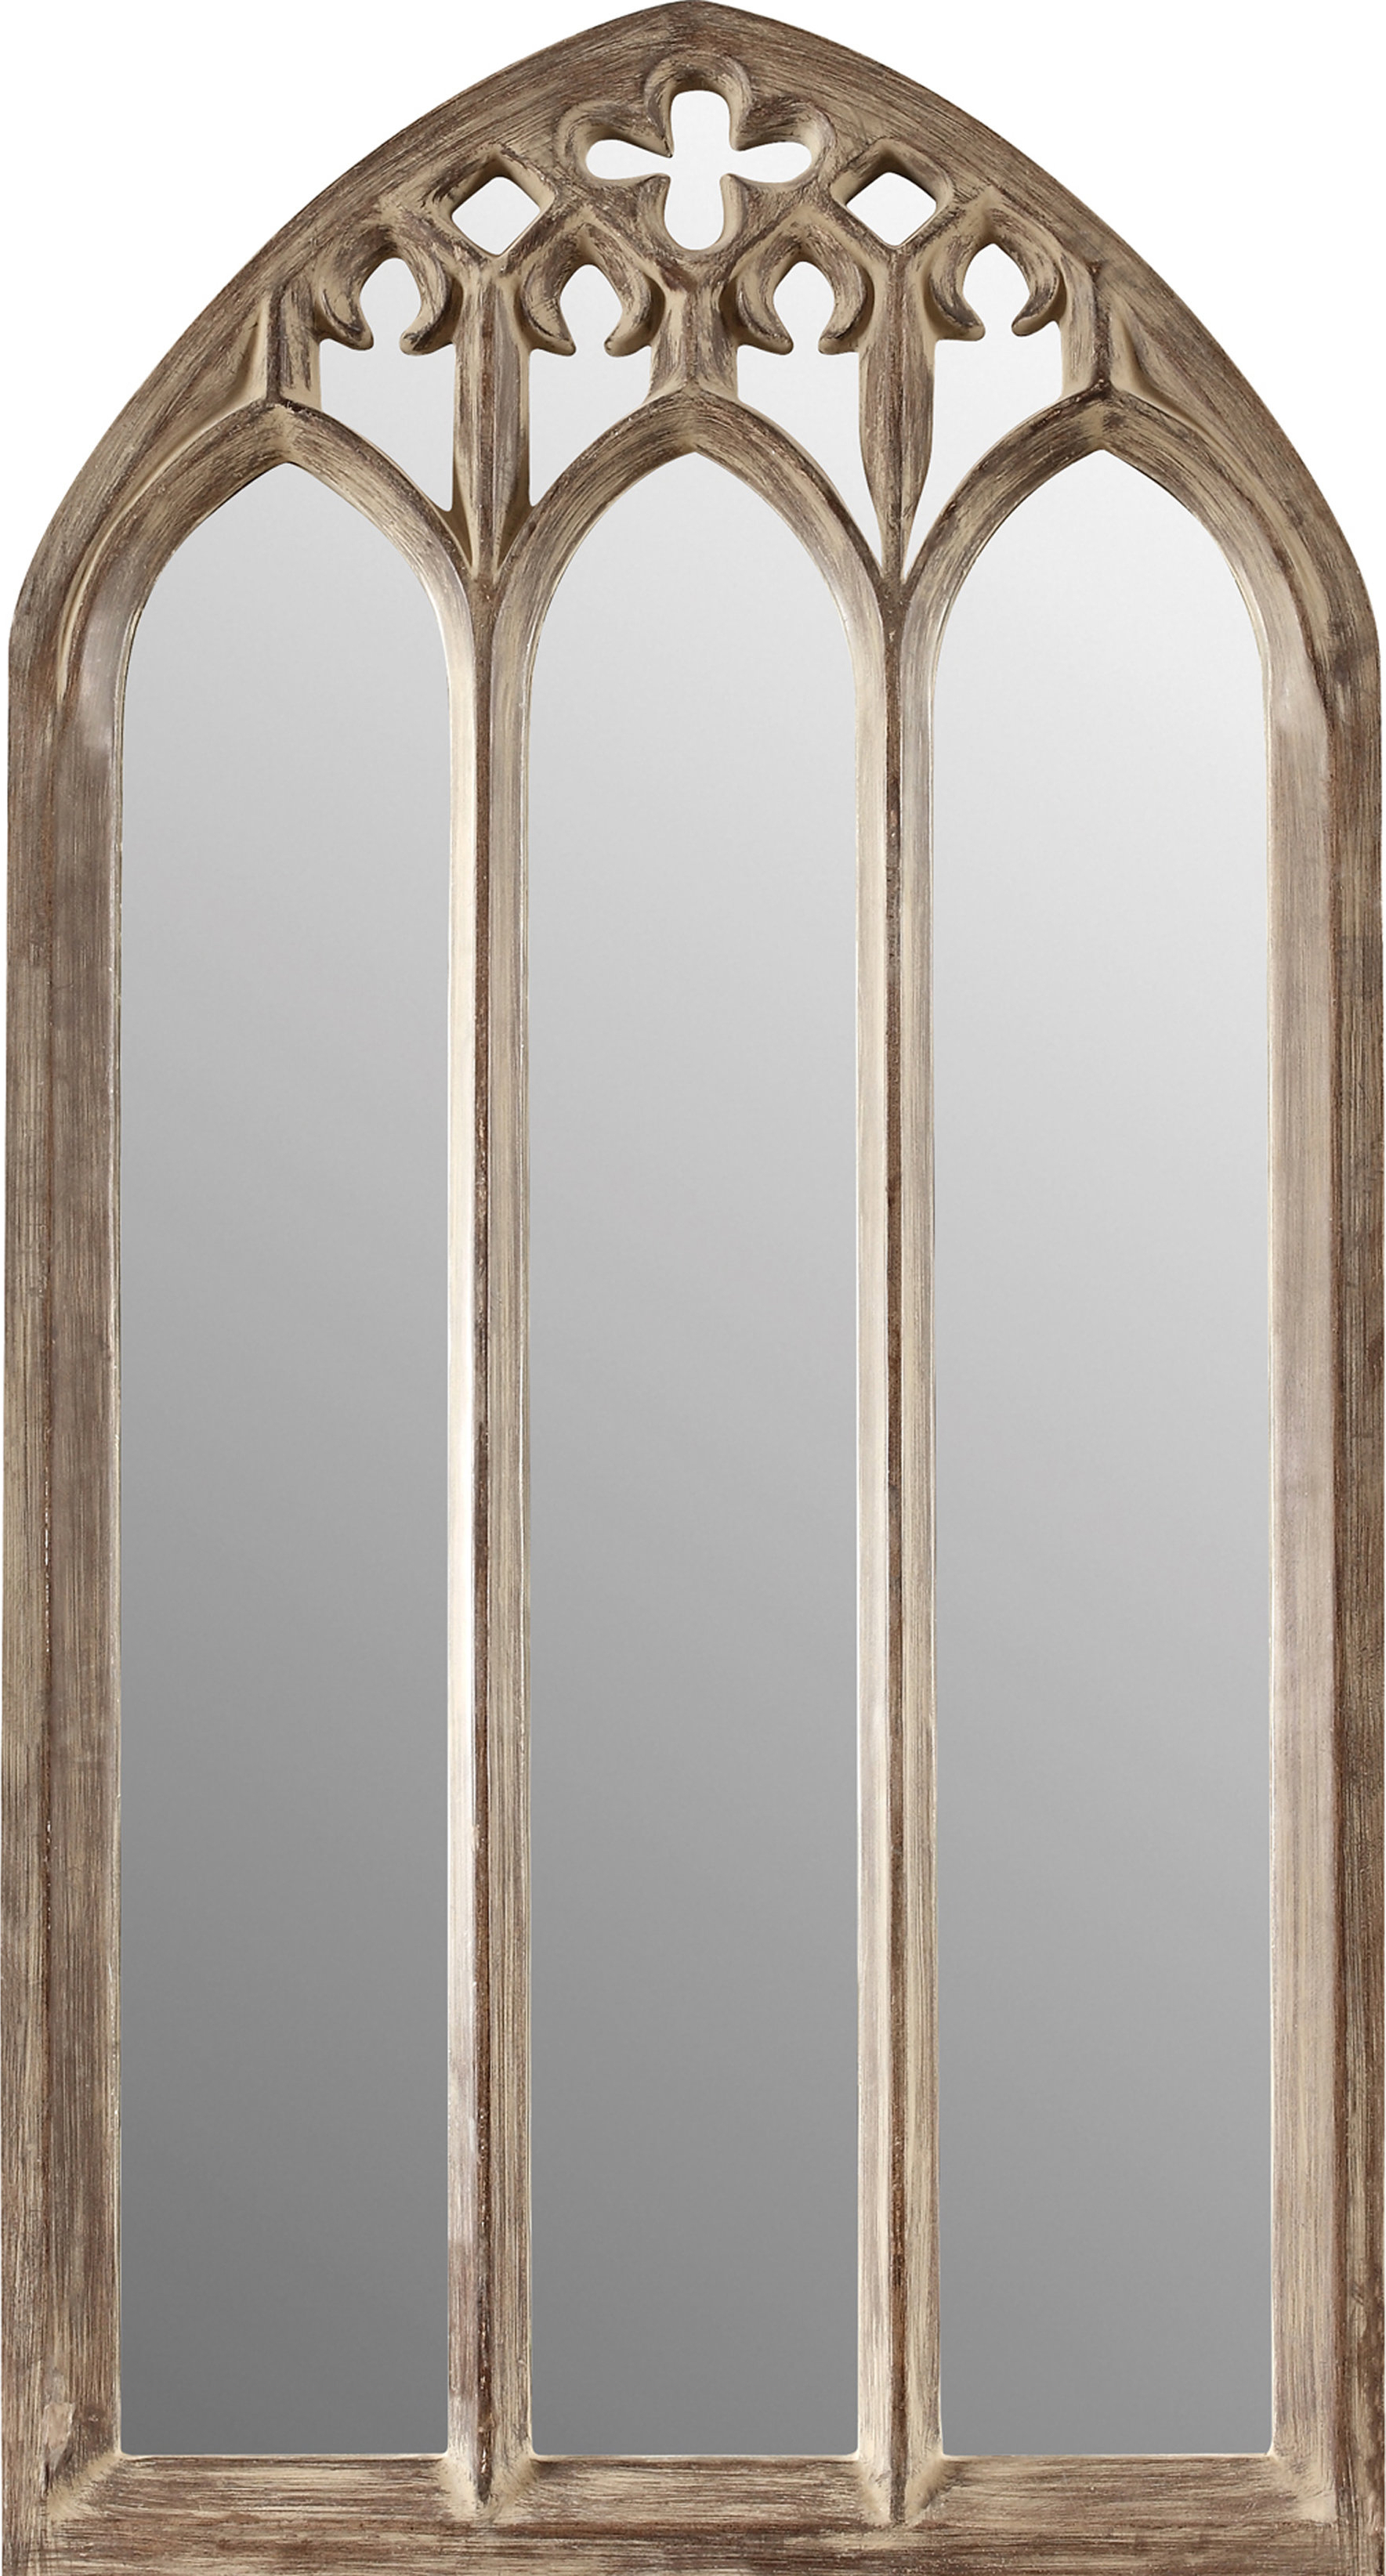 Juliana Accent Mirrors For Preferred Coronita Accent Wall Mirror (Gallery 20 of 20)